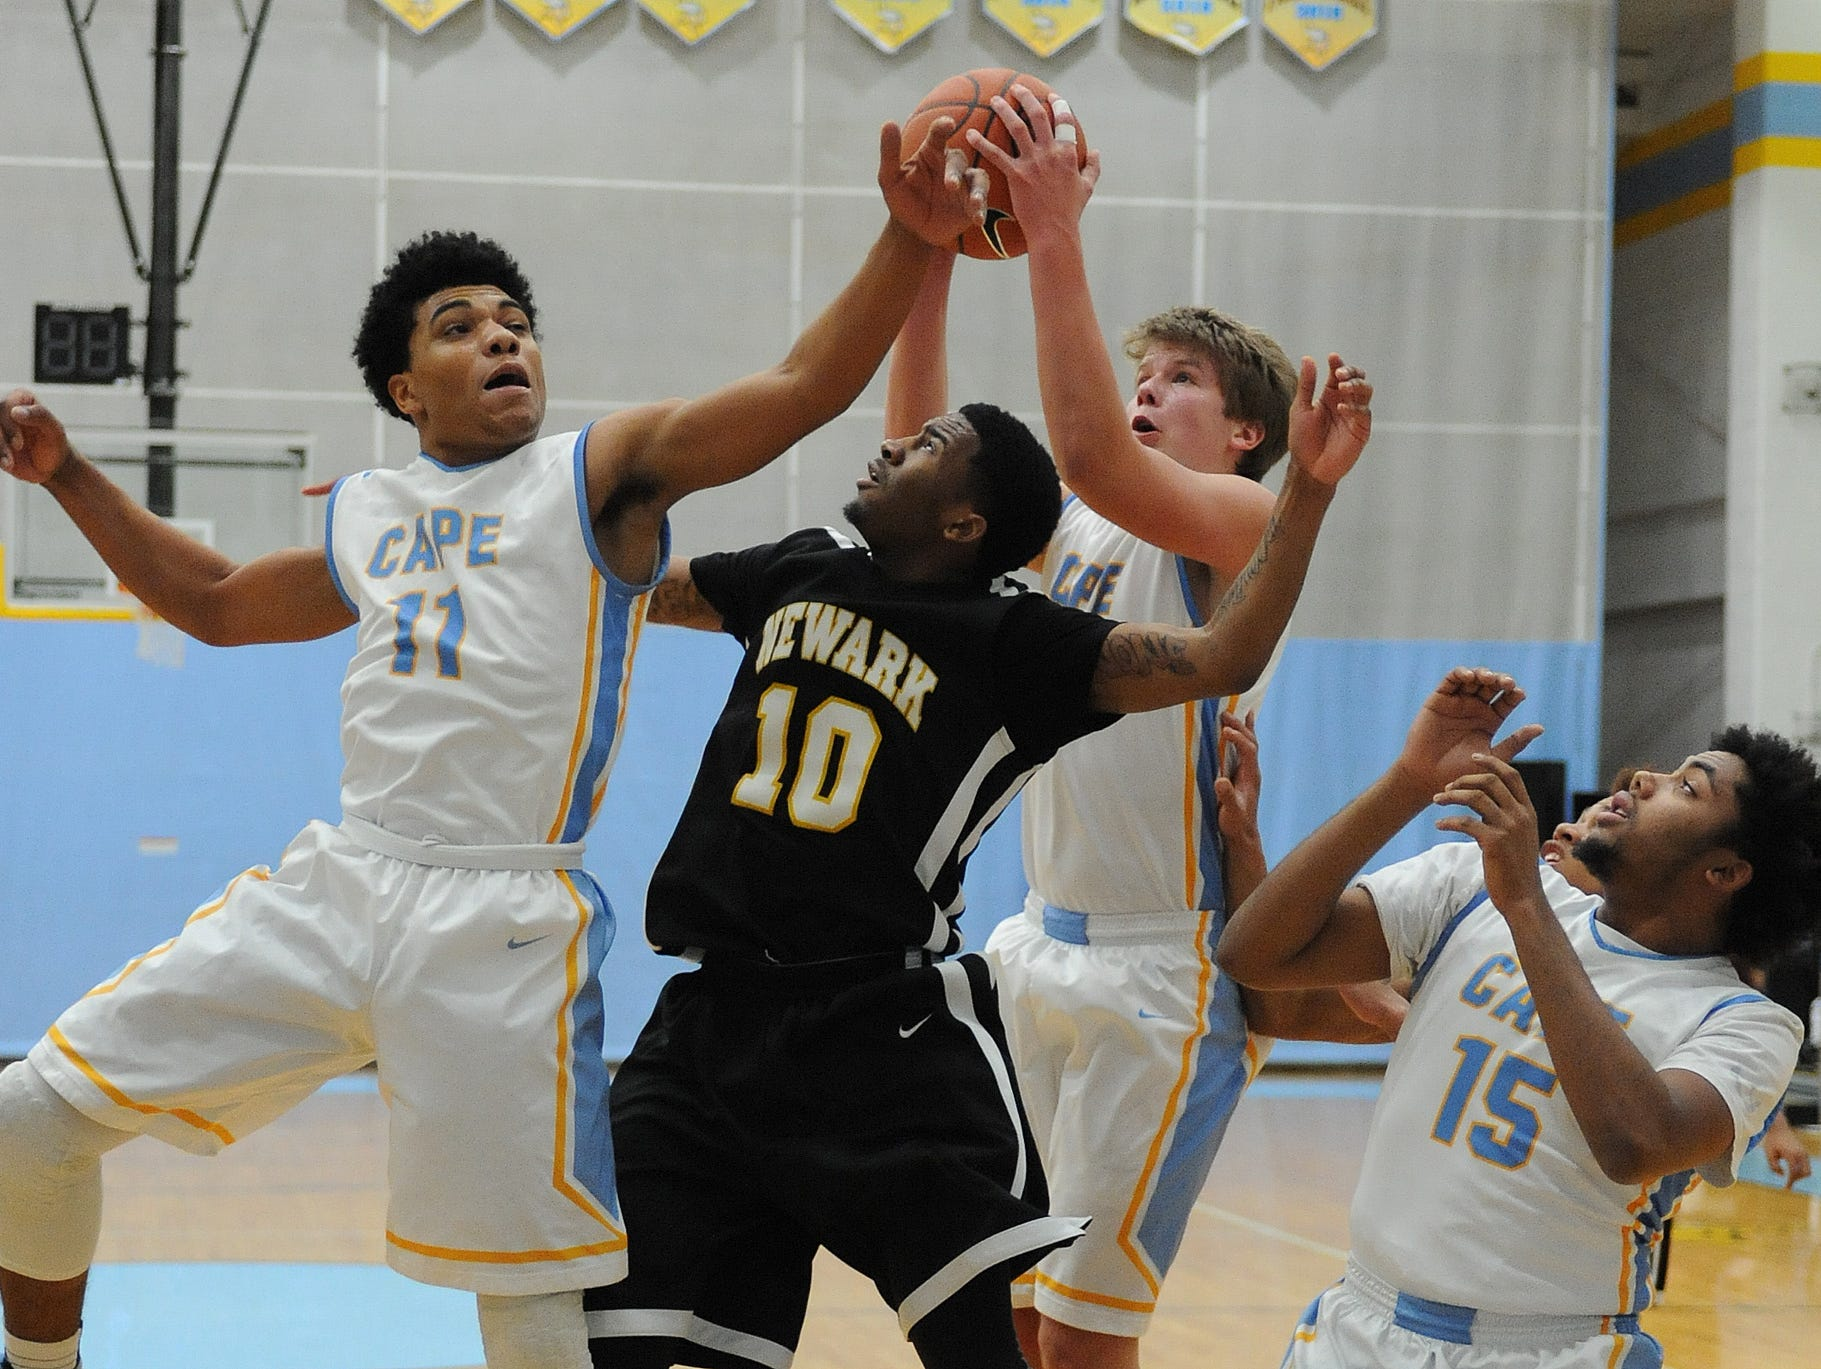 Capes Jerry Harden and Ian Robertson along with Newarks Rahmee Carter fight for the ball as Newark HS (black) and Cape Henlopen HS (white) varsity boys played in the 1st Round of the Boys DIAA Basketball Tournament at Cape Henlopen HS near Lewes on Wednesday March 2nd.